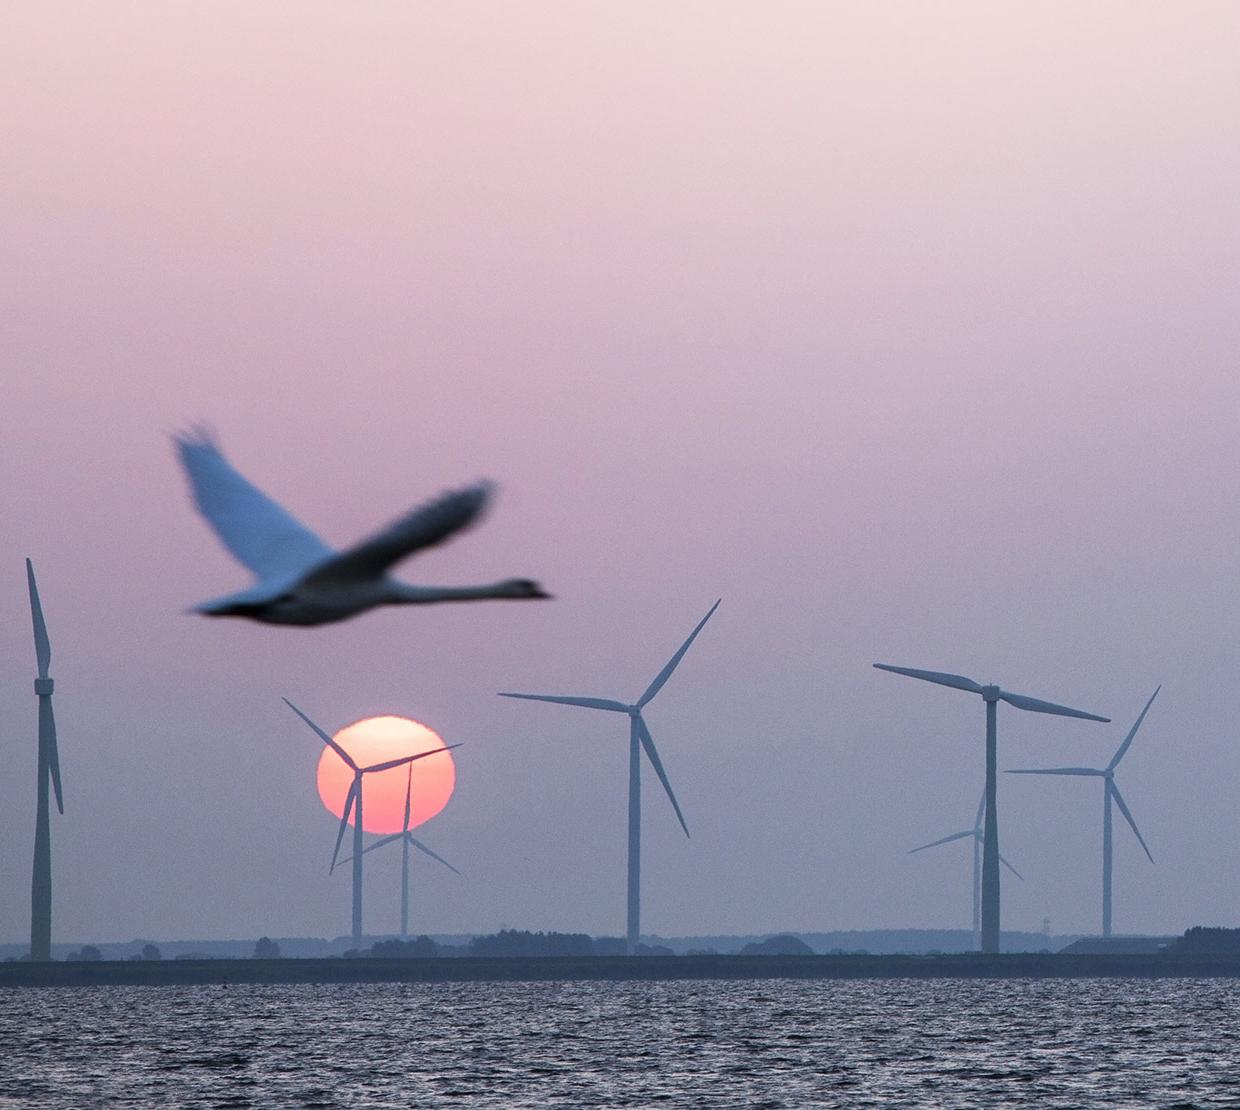 Bird flying next to windmills